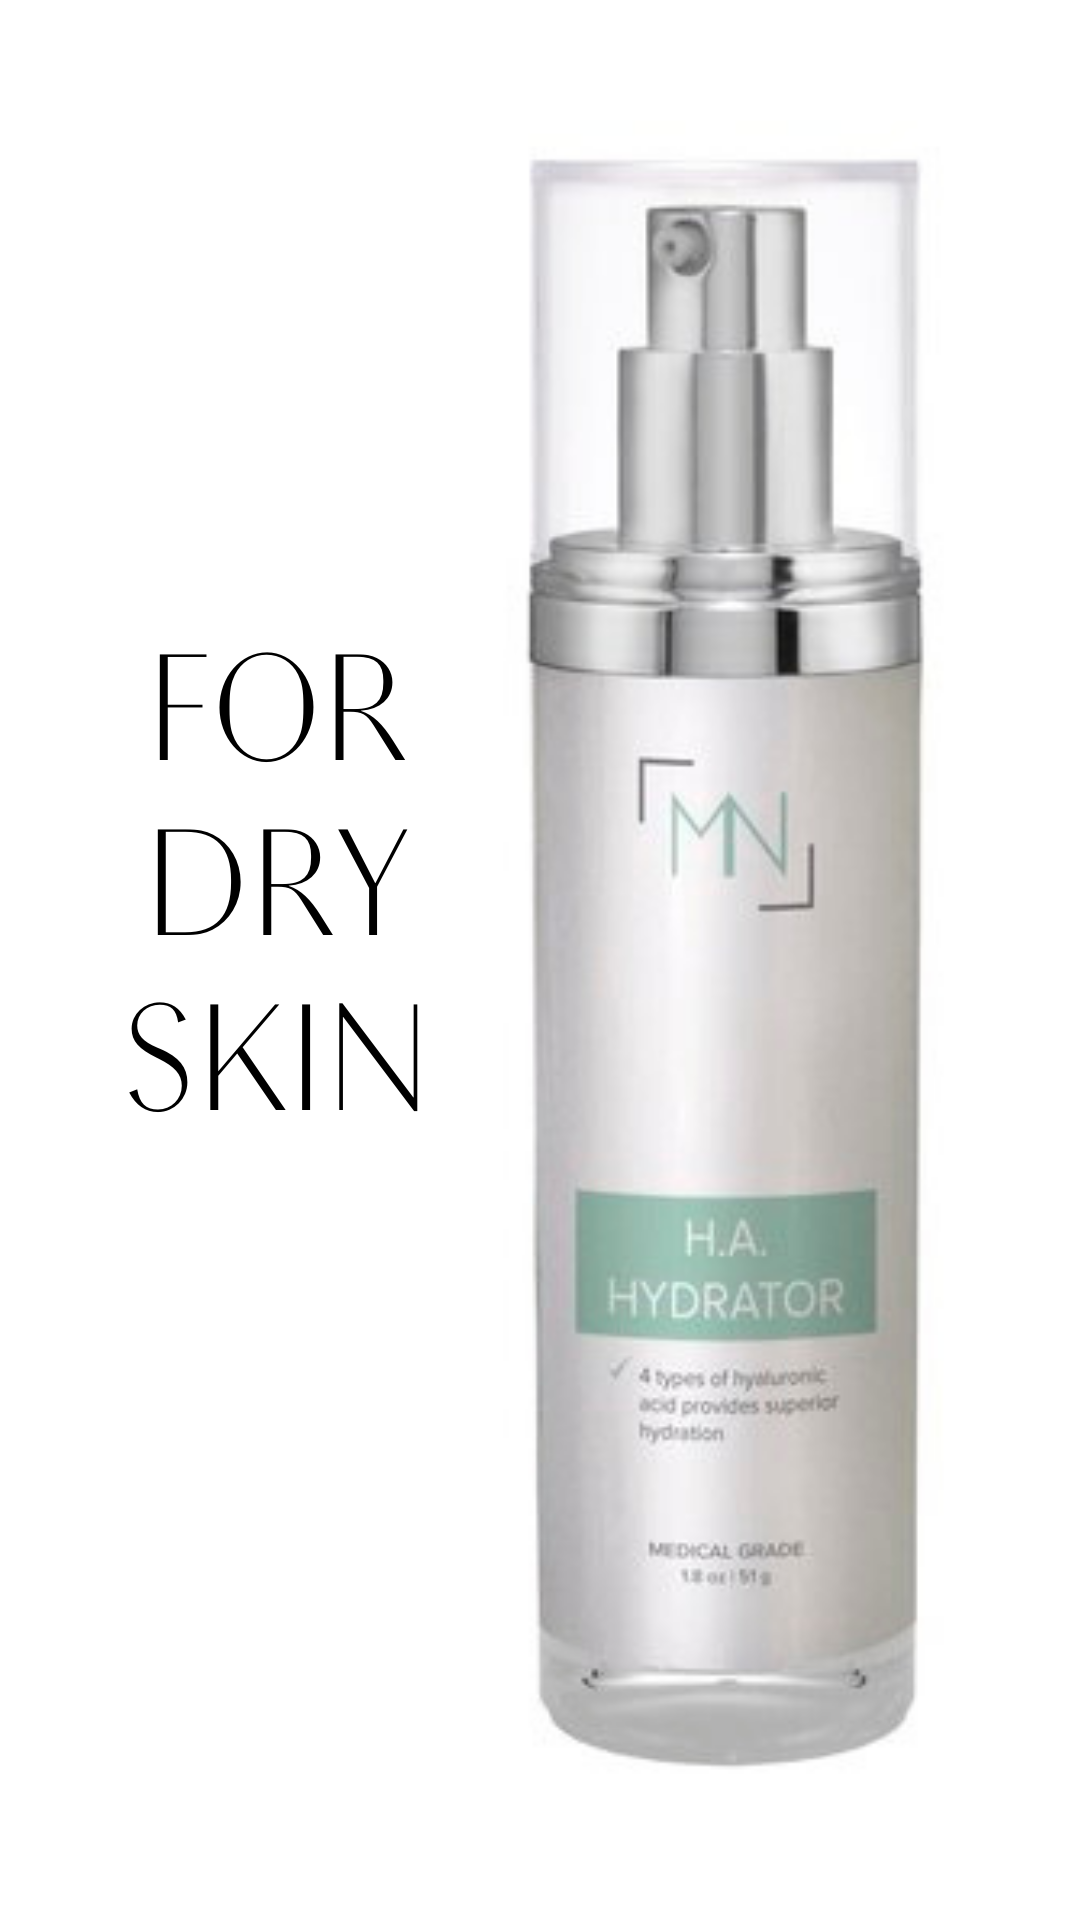 For Dry Skin